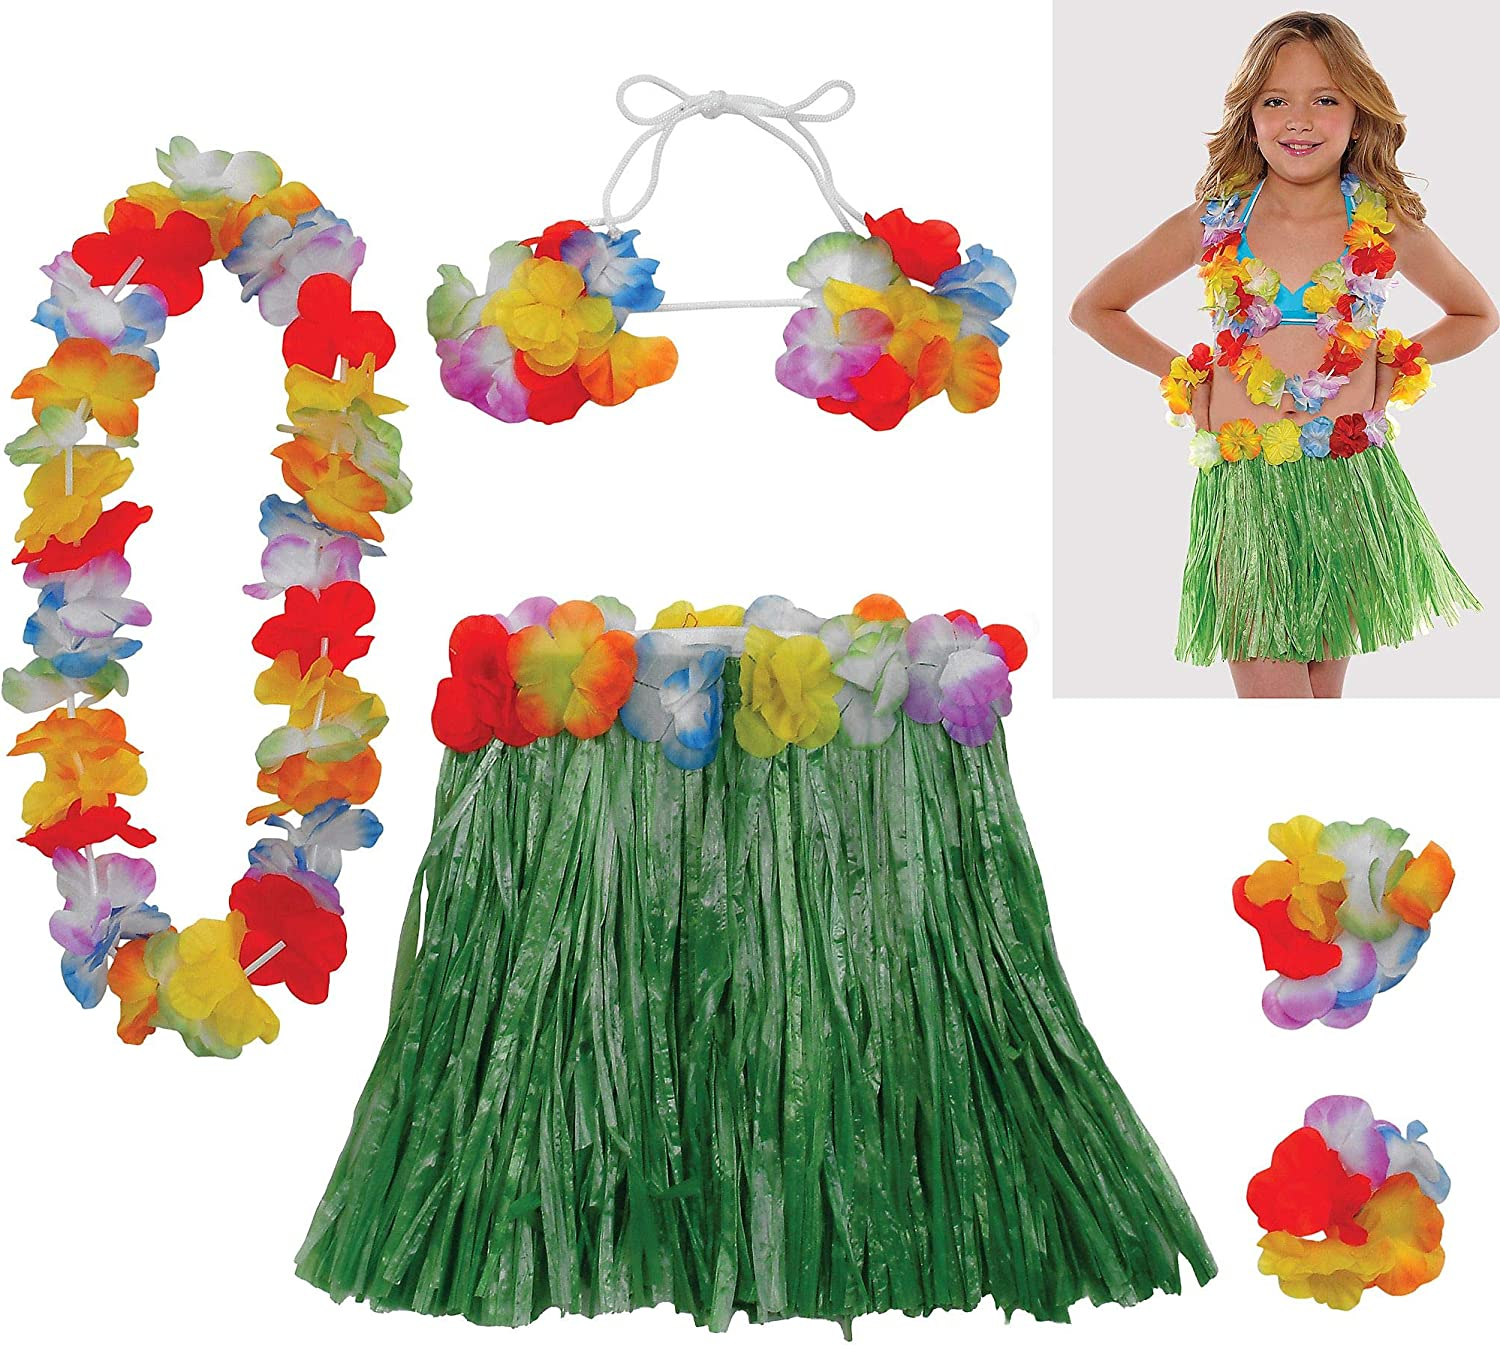 Hawaiian Hula Skirt Party Dress Up Costume Tropical Luau Leis Grass Adult /& Kid